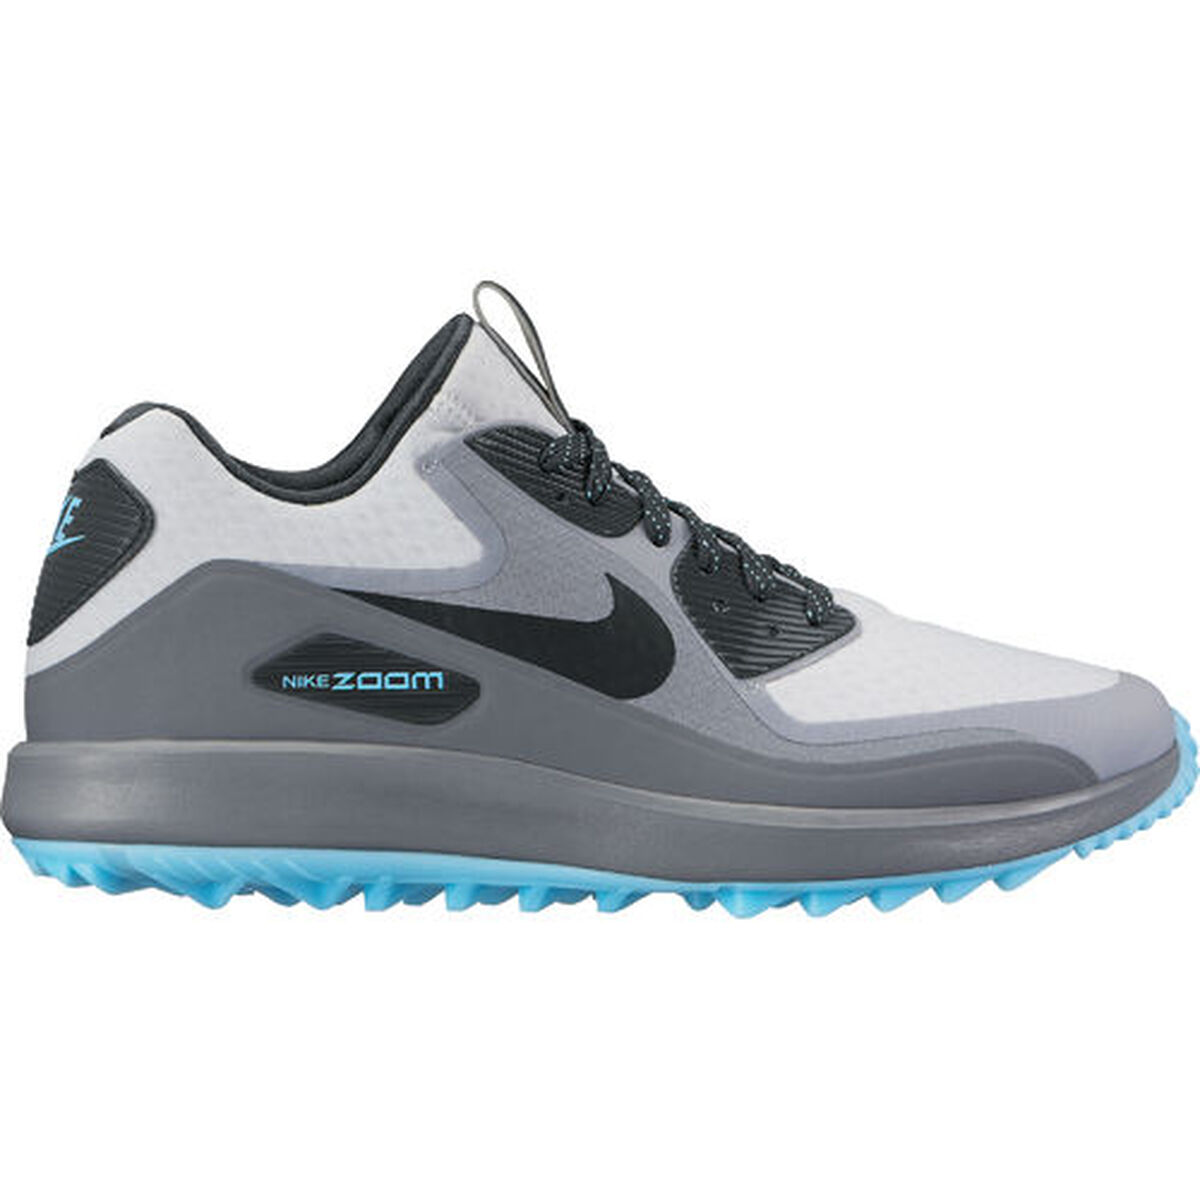 new product de1ae 16974 Images. Nike Air ...